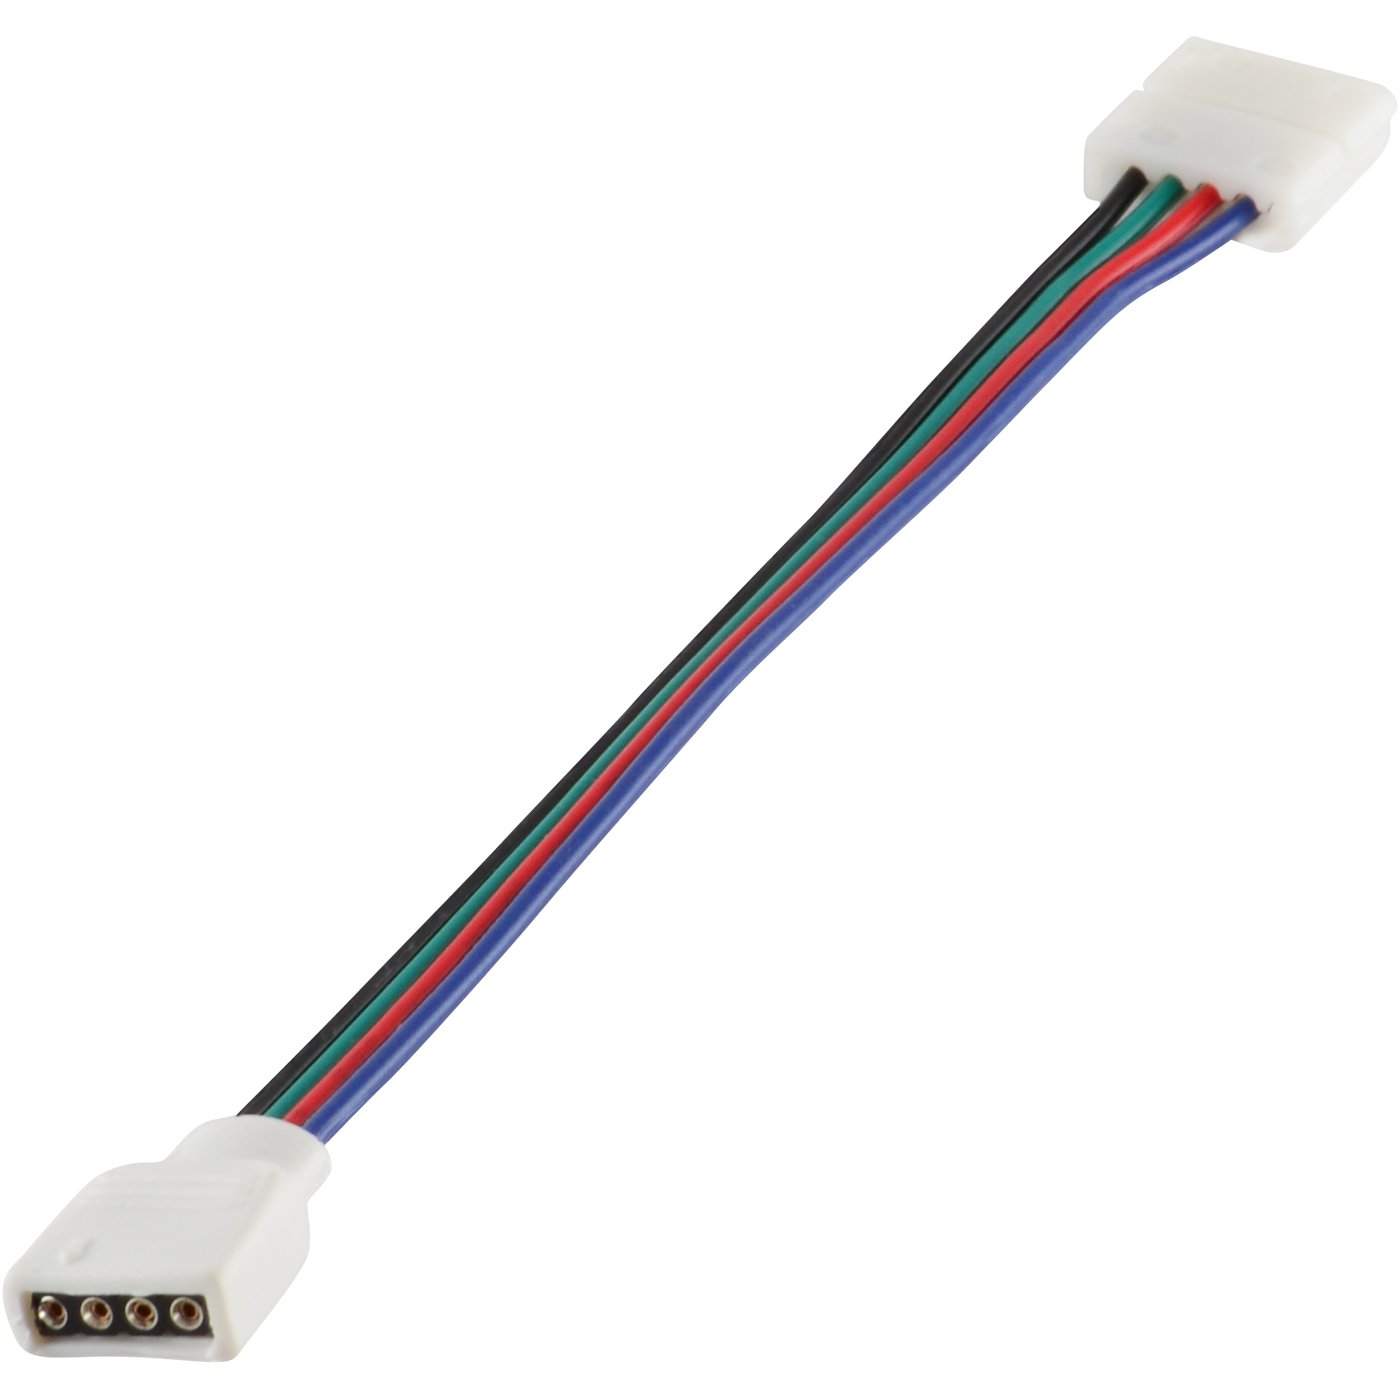 4 Wire Solderless Clip To Pin Female 6 Inch Cable For Wireclip Wiring Led Light Strips Photo Rgb Strip Home Improvement